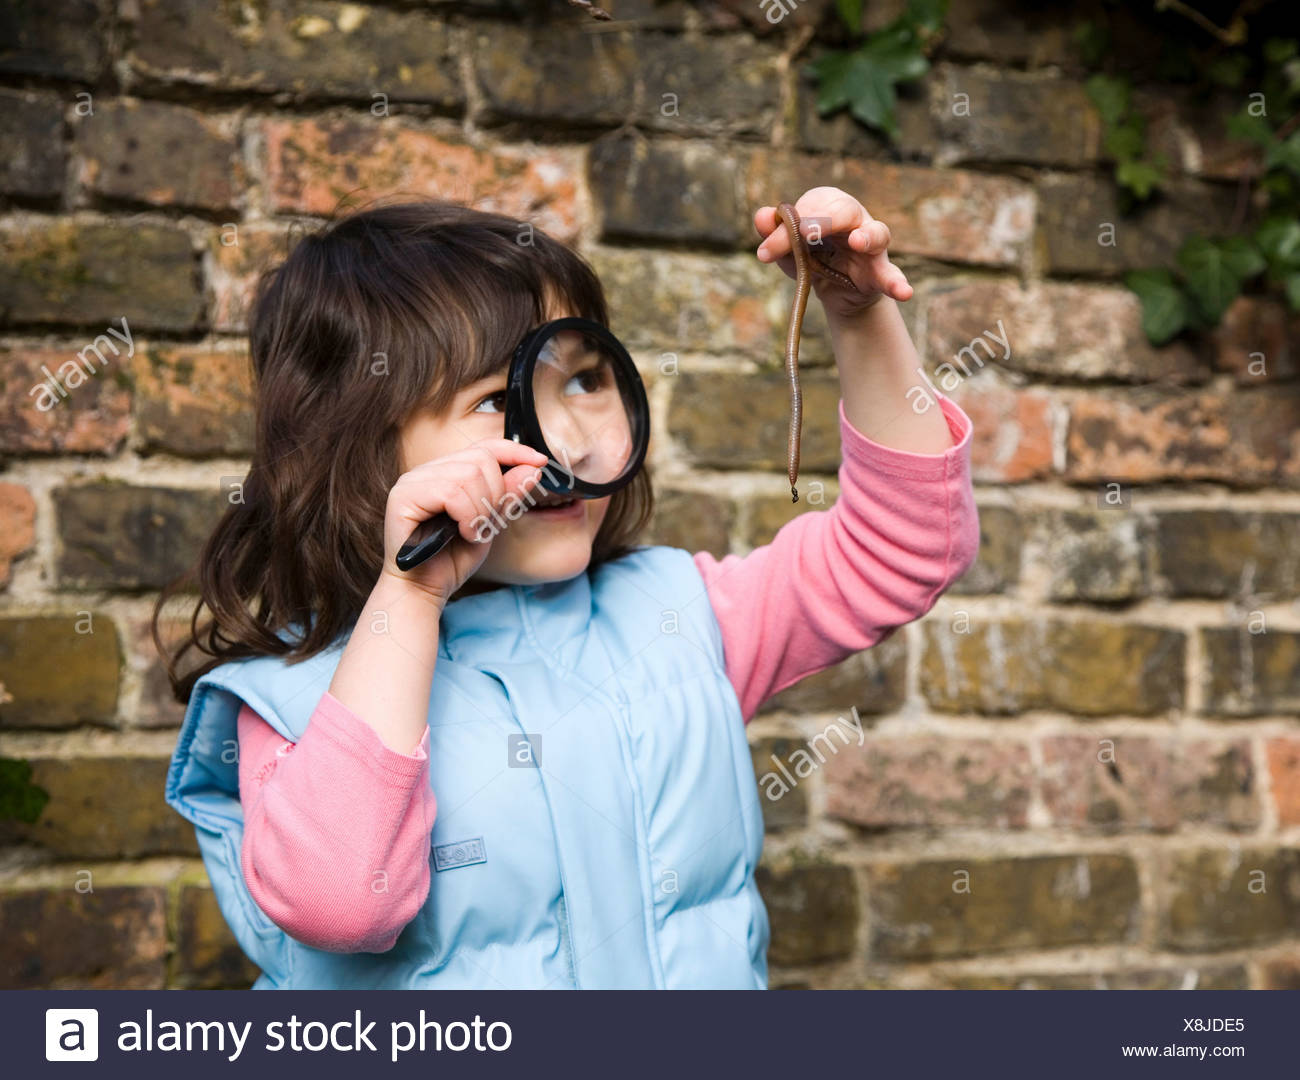 Girl looking at worm with magnifying glass - Stock Image